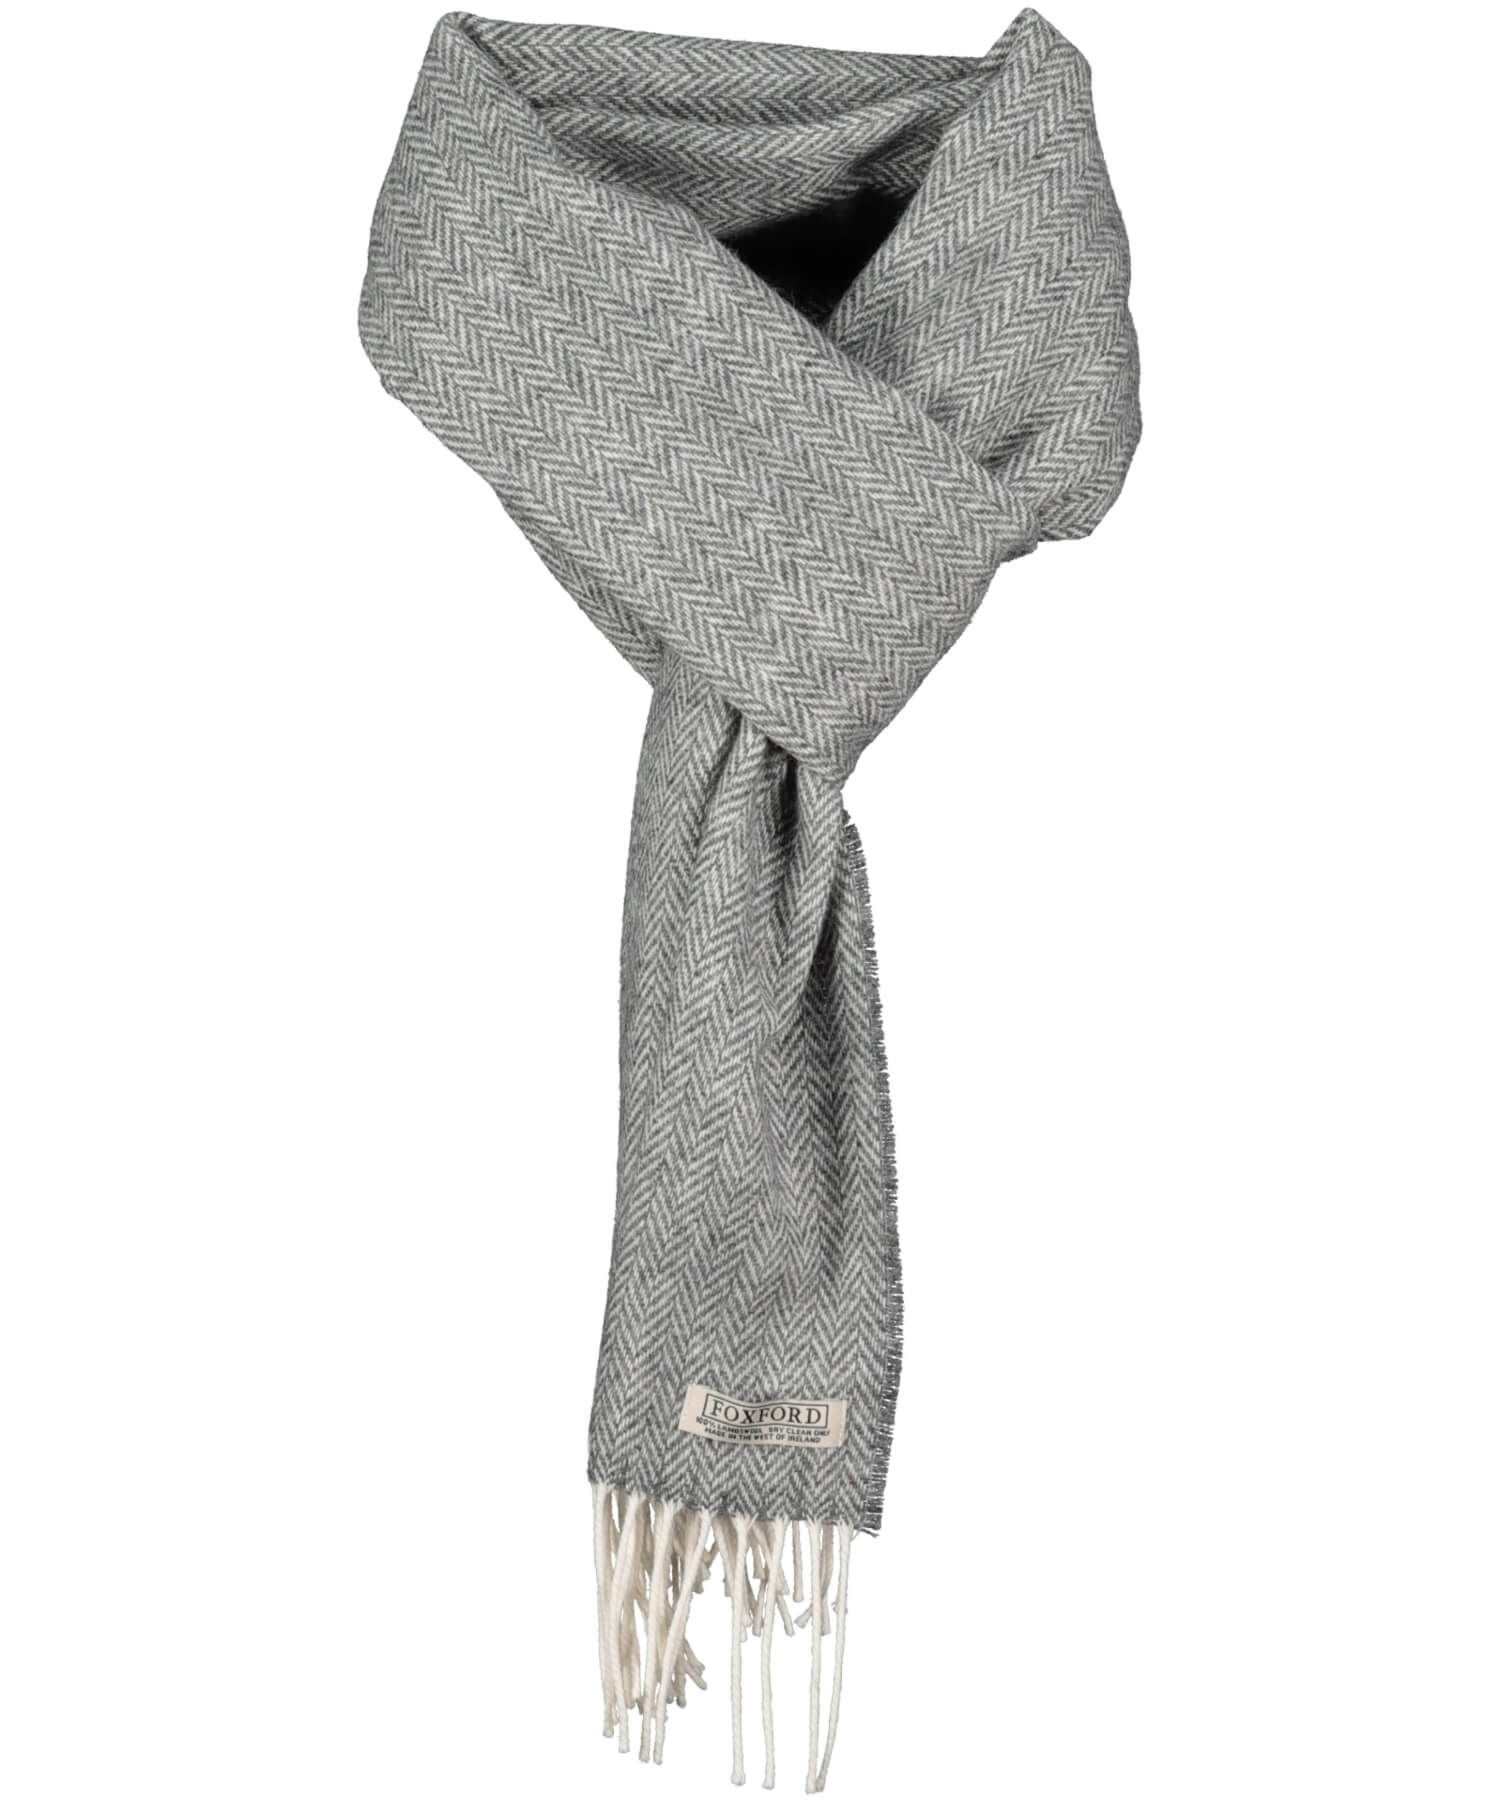 Lambswool Scarf - Smokey Herringbone - [Foxford] - Unisex Scarves - Irish Gifts